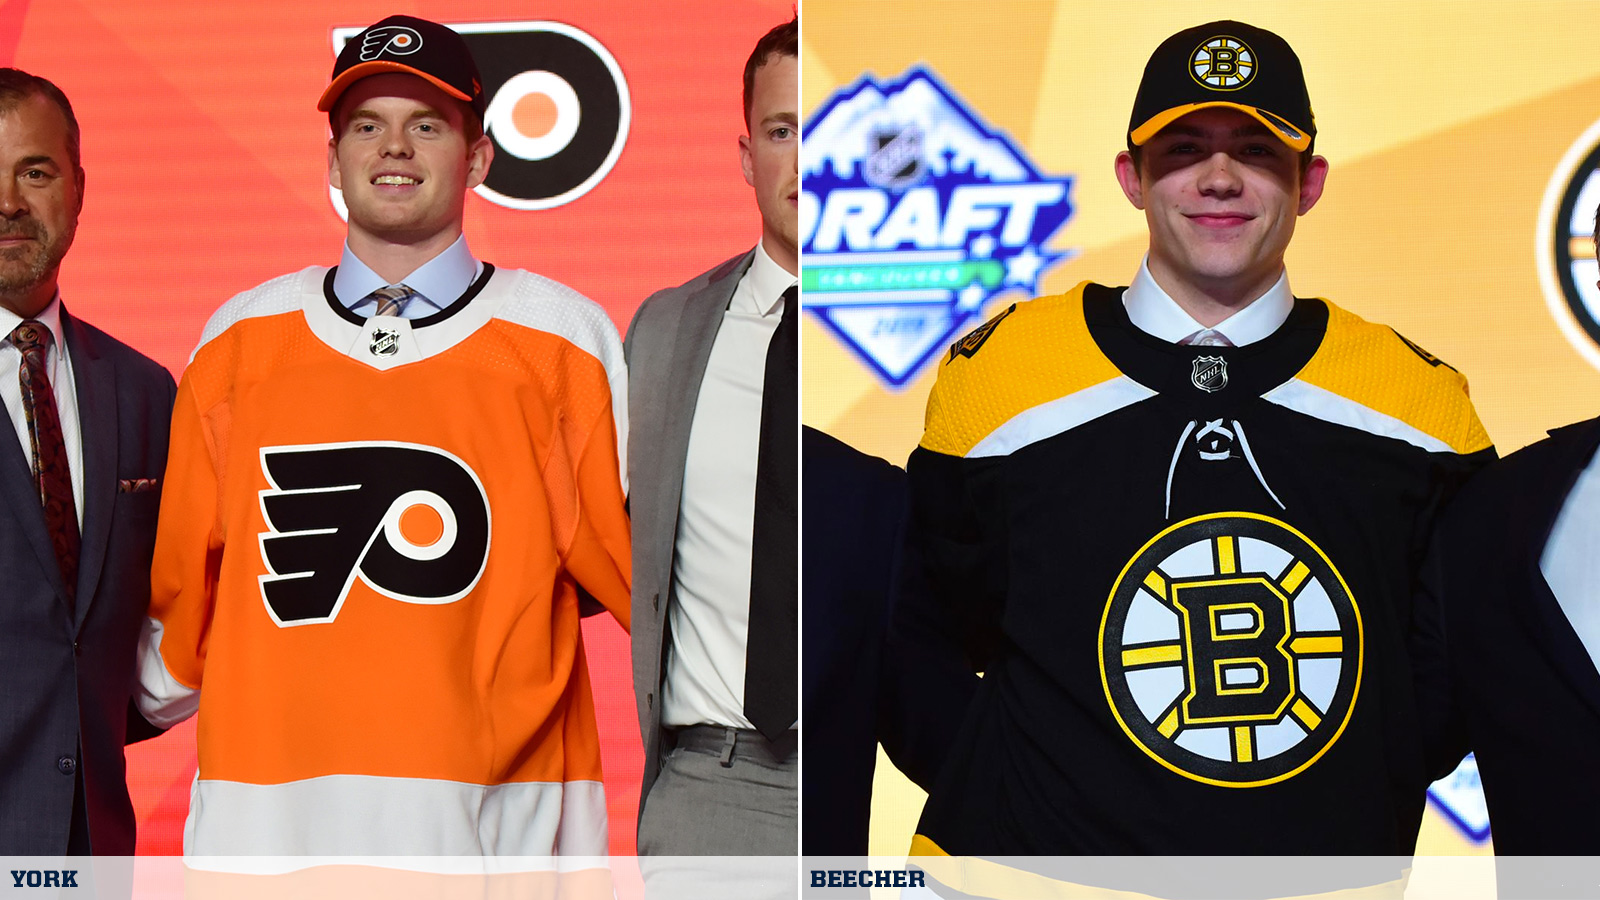 Incoming Freshmen York, Beecher Selected in First Round of 2019 NHL